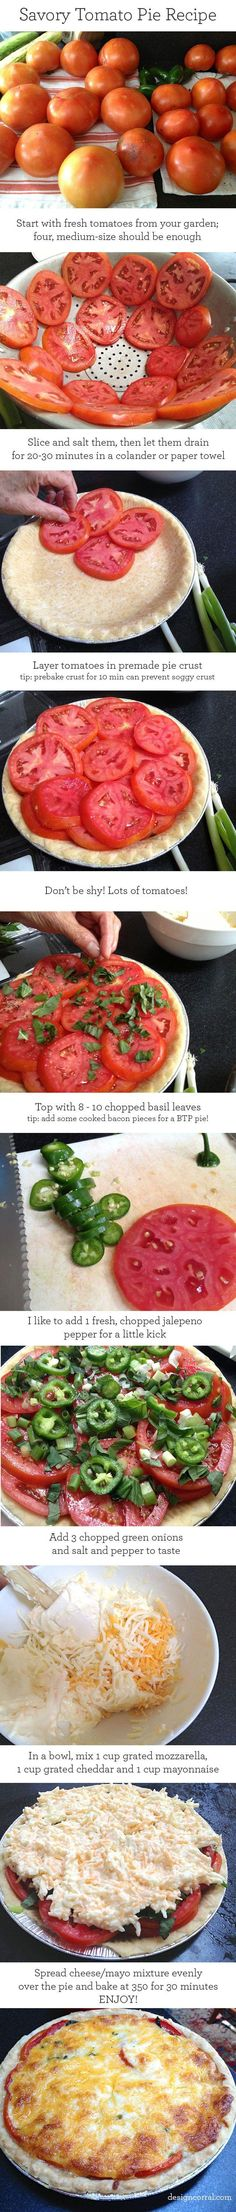 Savory tomato pie. Cheat treat recipe! Sub Greek yogurt for mayo. Minus jalapeños